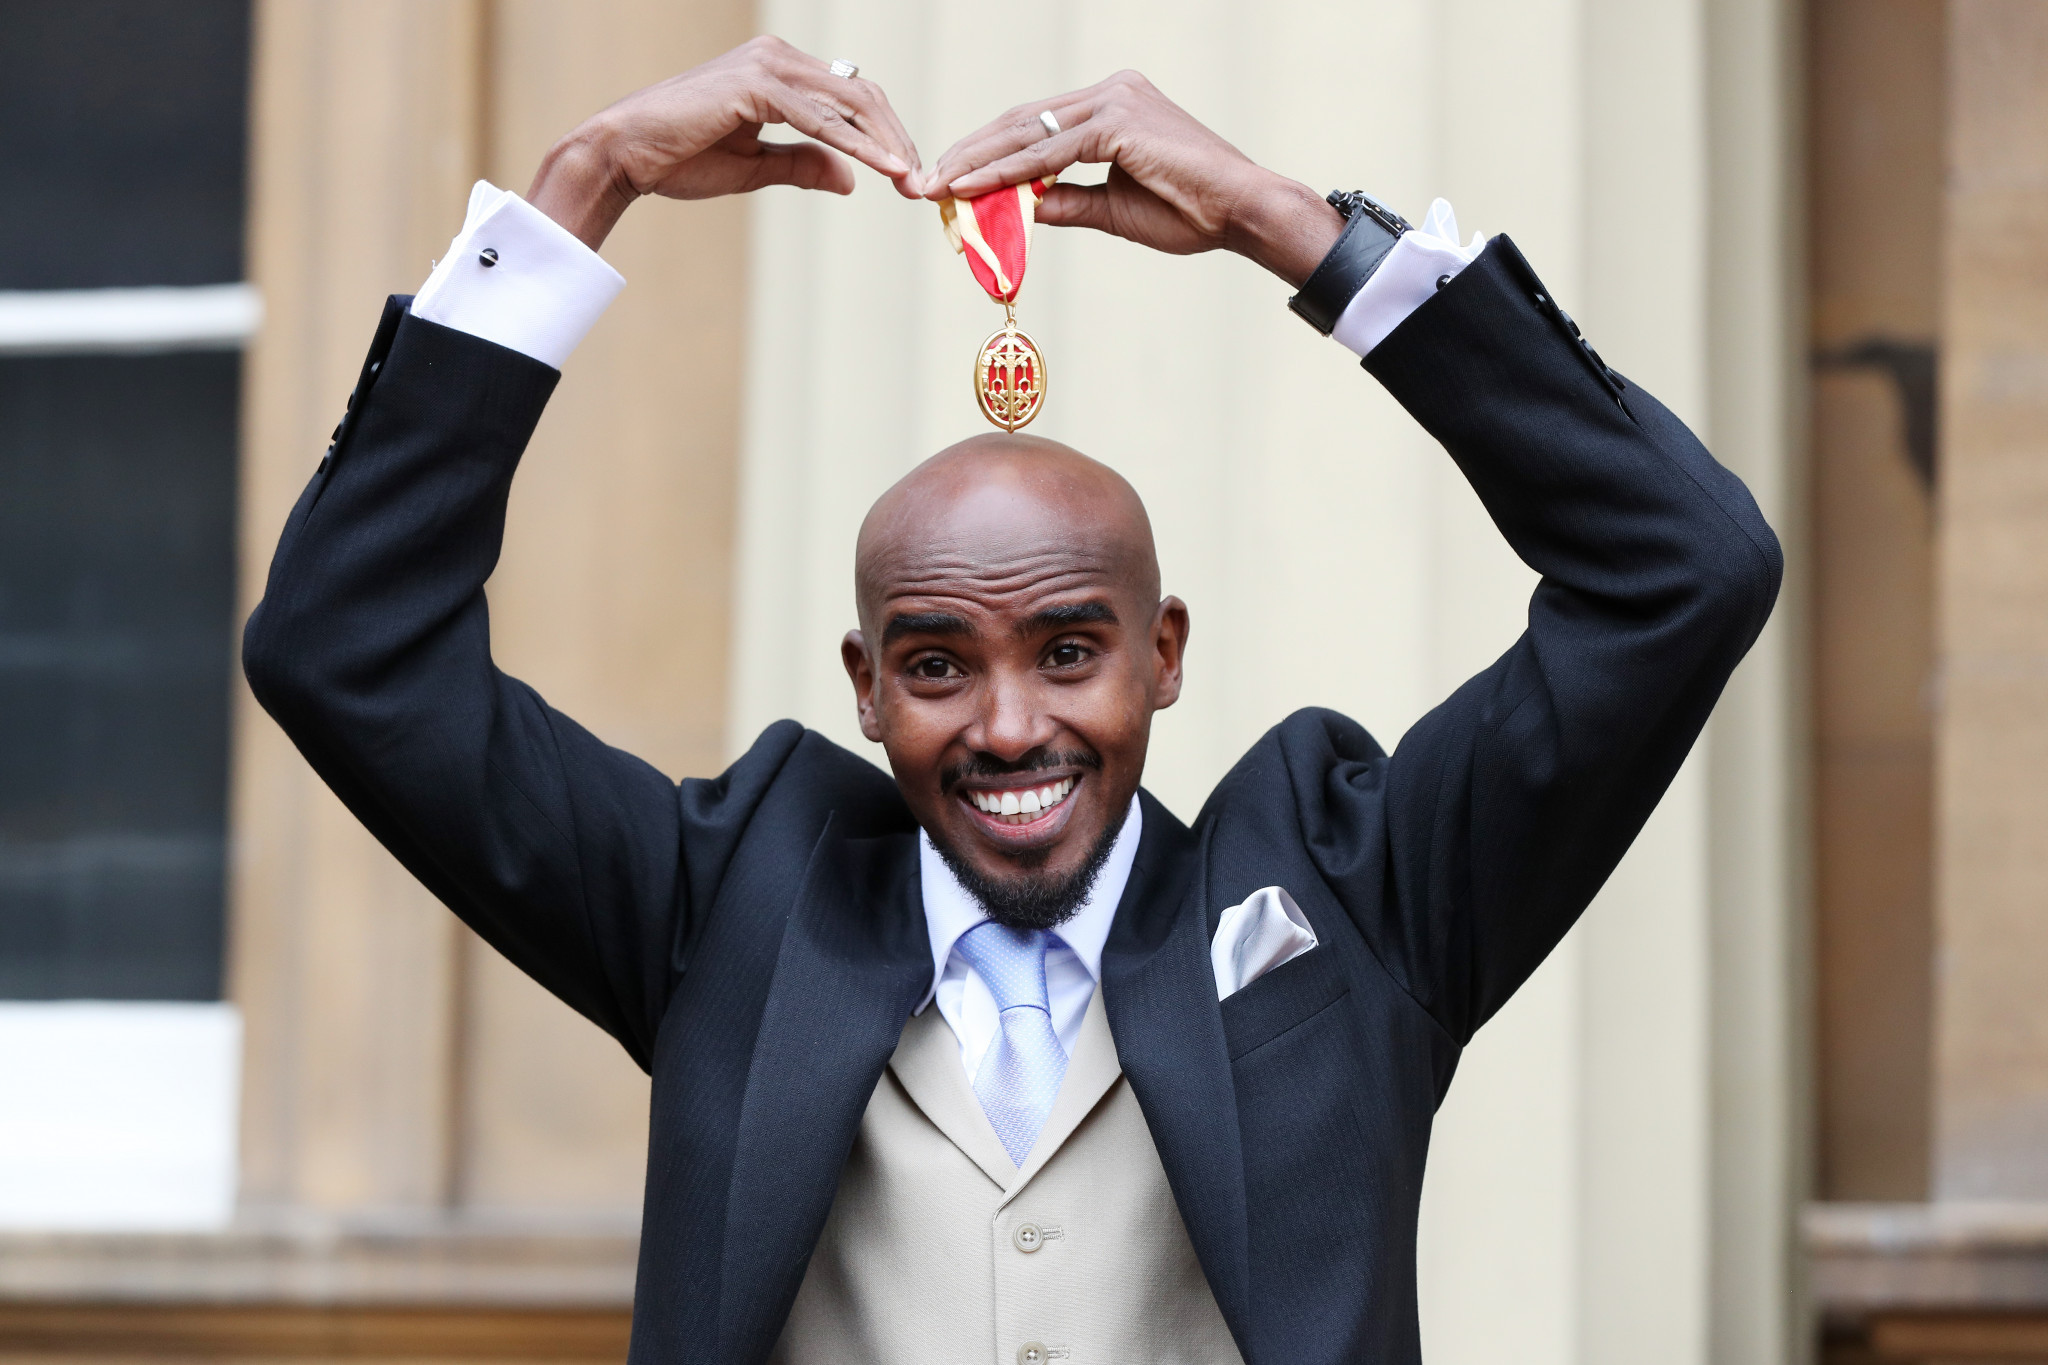 Four-time Olympic champion Sir Mo Farah has had better years but nevertheless, here he does his trademark 'mobot' after receiving his knighthood from Queen Elizabeth II at Buckingham Palace last month ©Getty Images